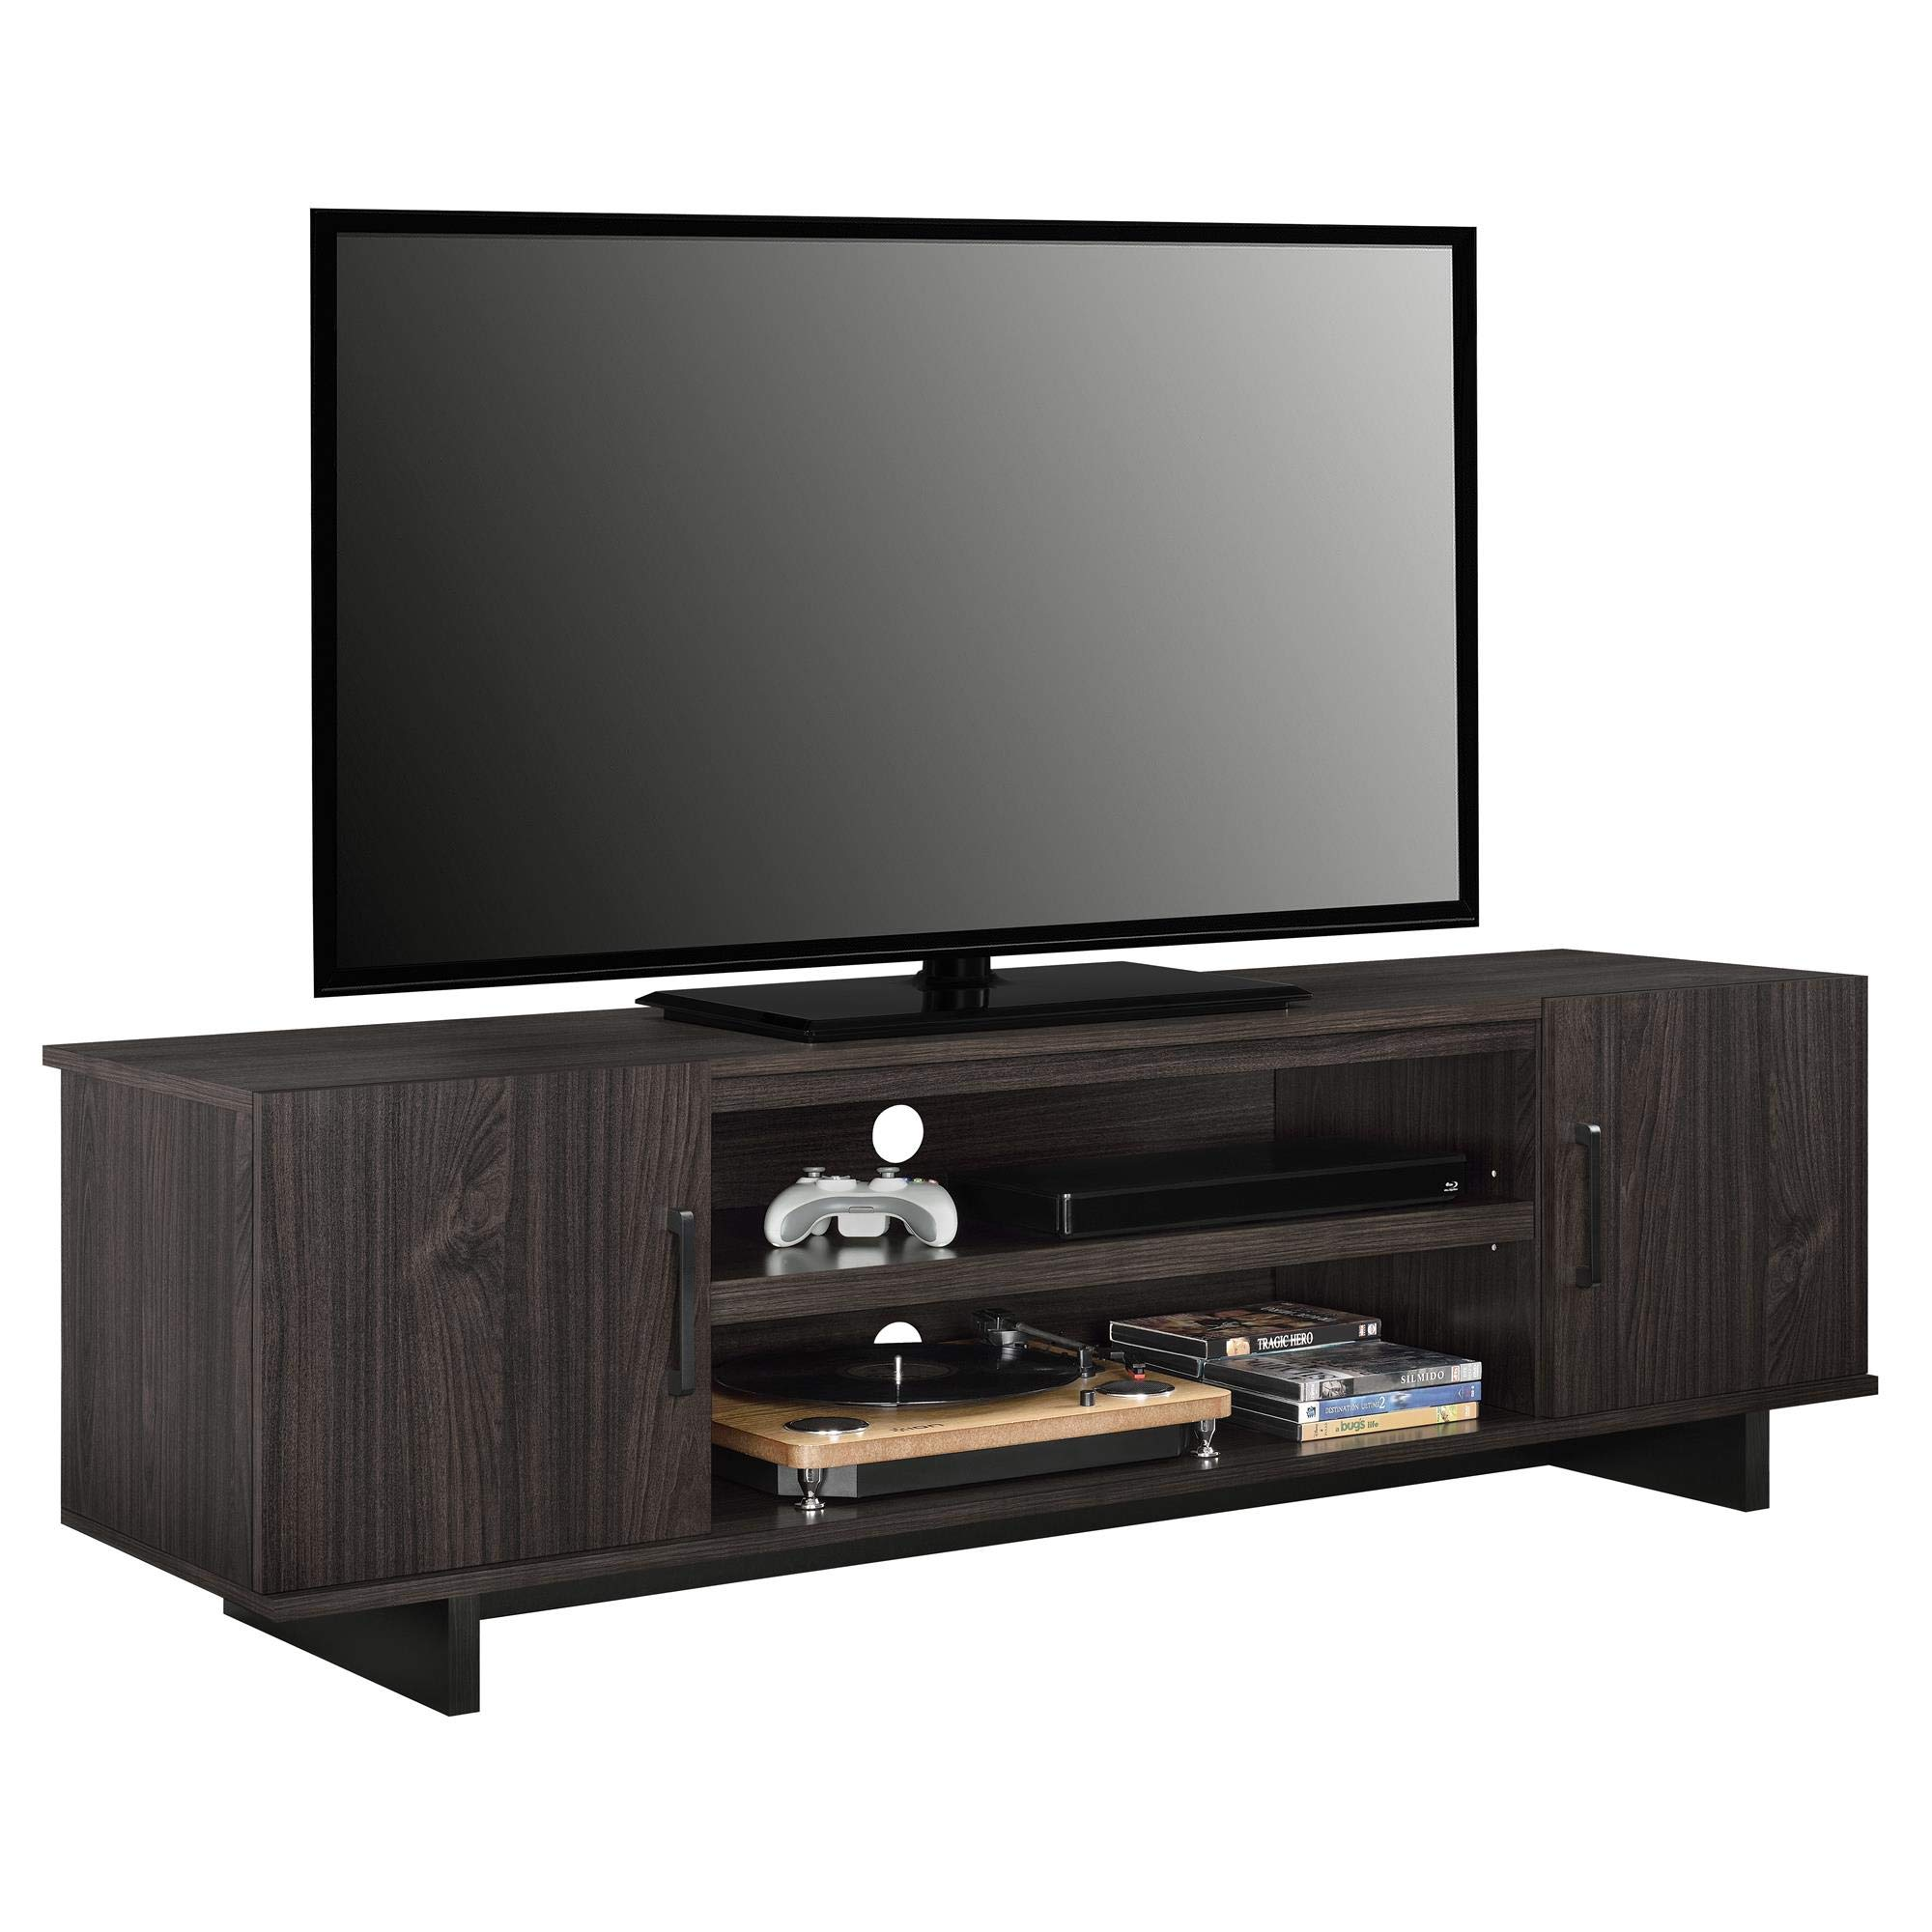 Ameriwood Home Southlander TV Stand, Espresso by Ameriwood Home